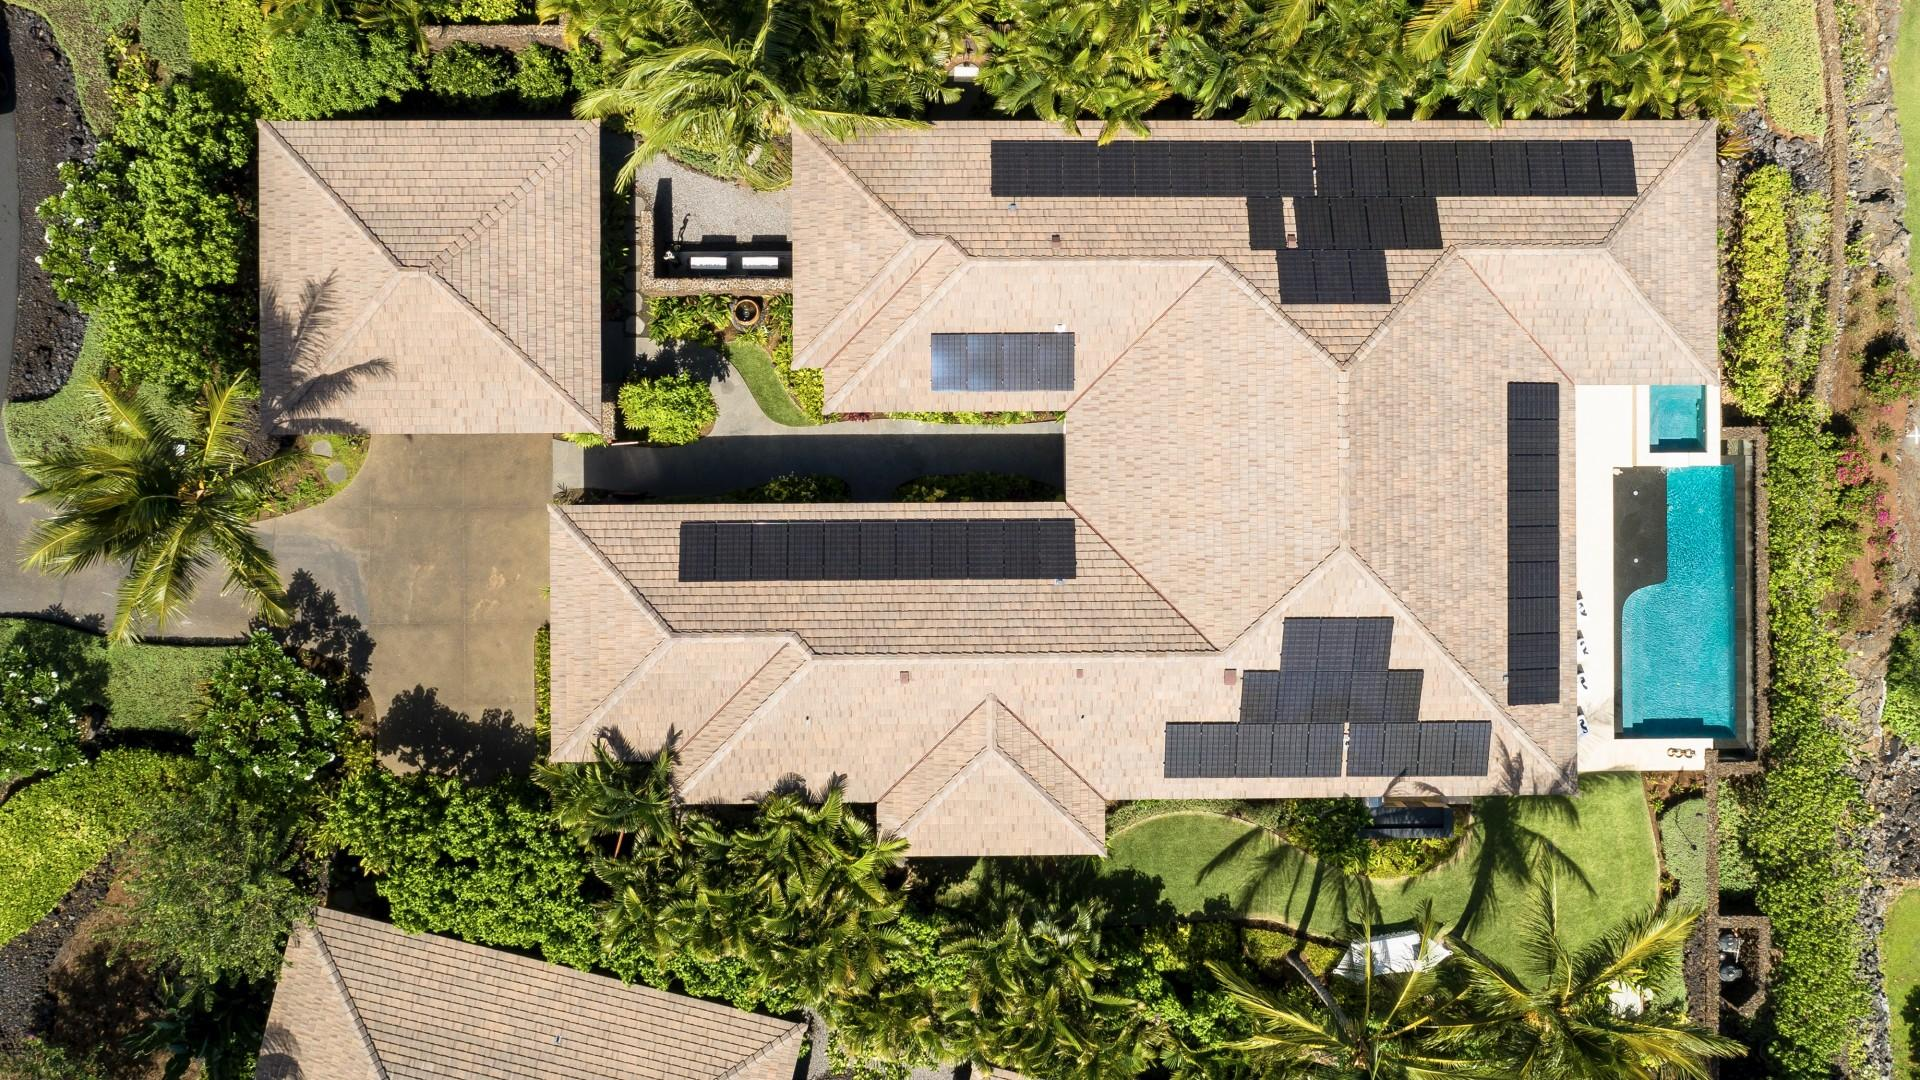 Aerial view of this sumptuous luxury estate home.